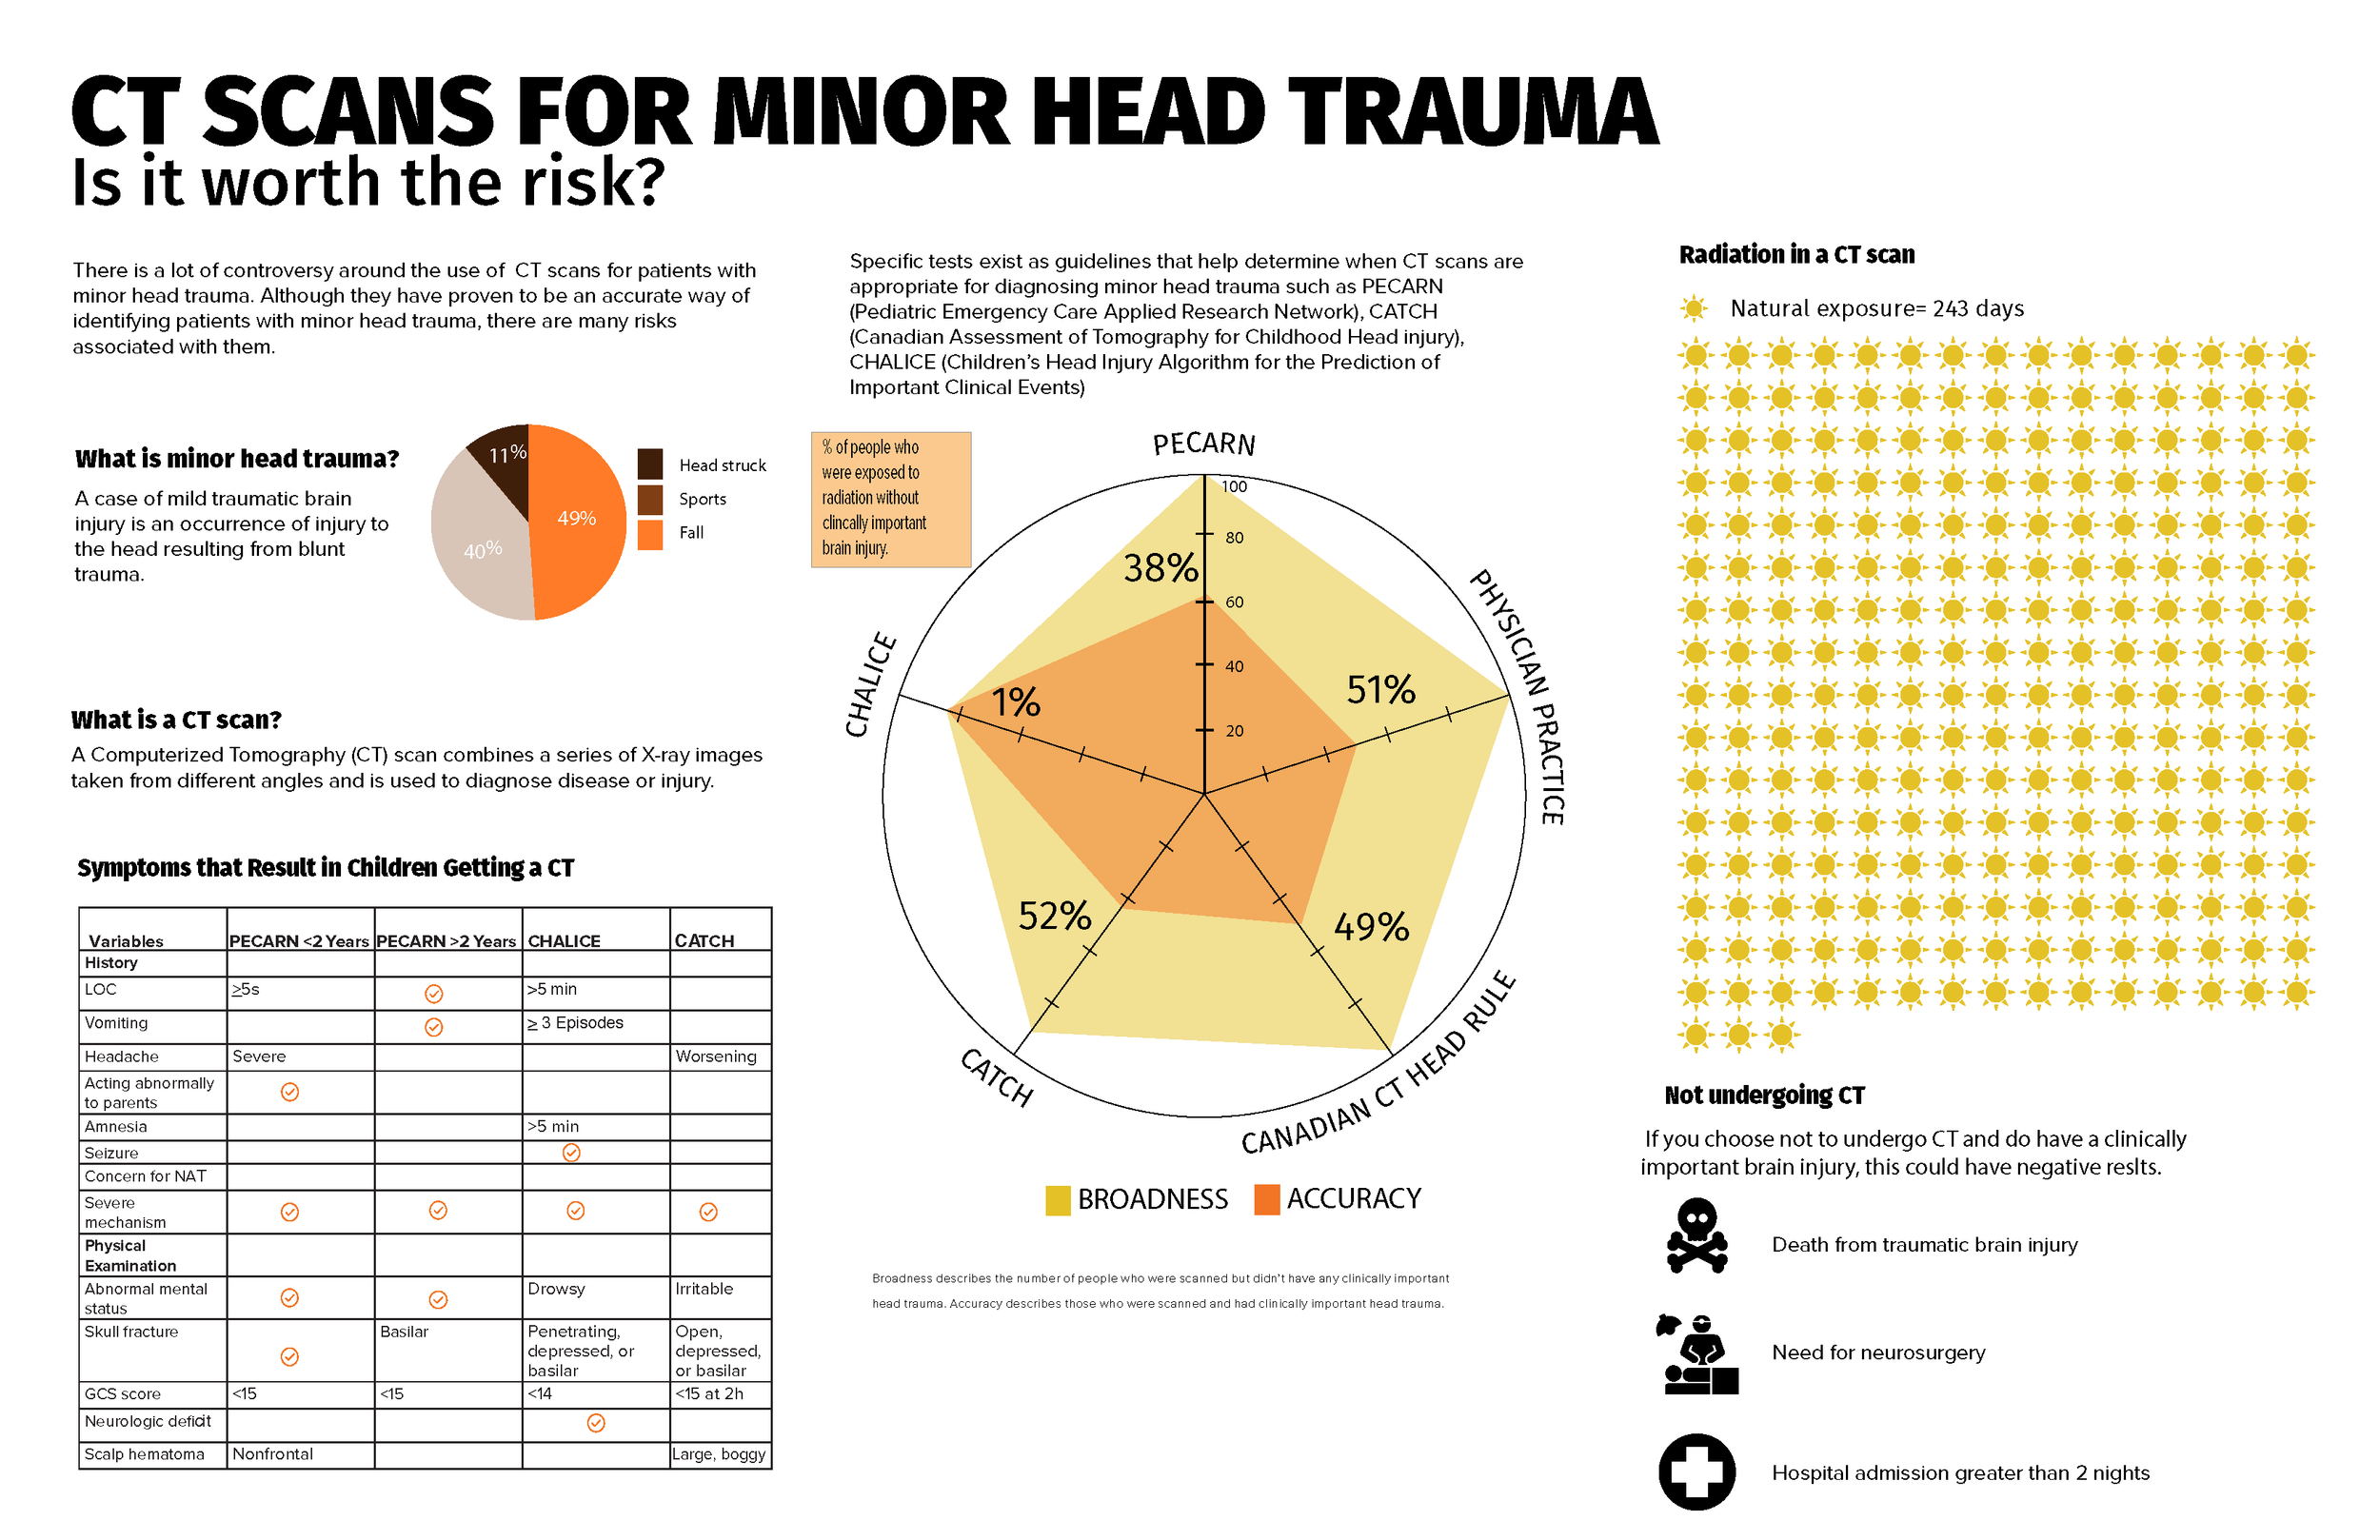 CT scans for minor head trauma     This infographic was designed in collaboration with Choosing Wisely Canada to help patients and doctors have an in depth discussion in order to make an informed decision regarding obtaining a CT scan or not for the patient.